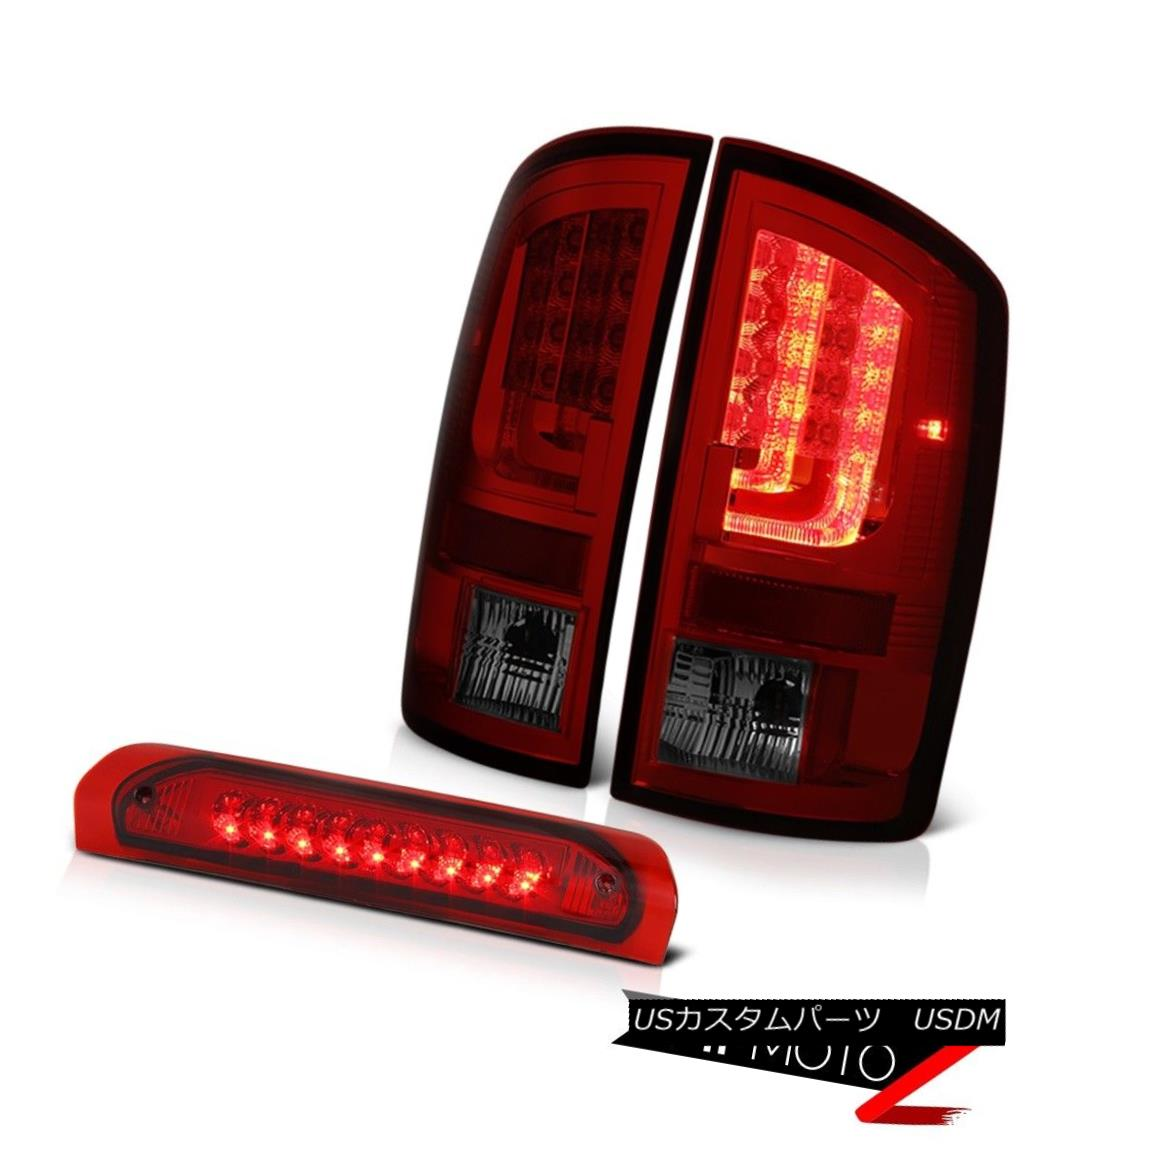 テールライト 2002-2006 Dodge Ram 1500 4.7L Smokey Red Tail Lamps Roof Cab Light